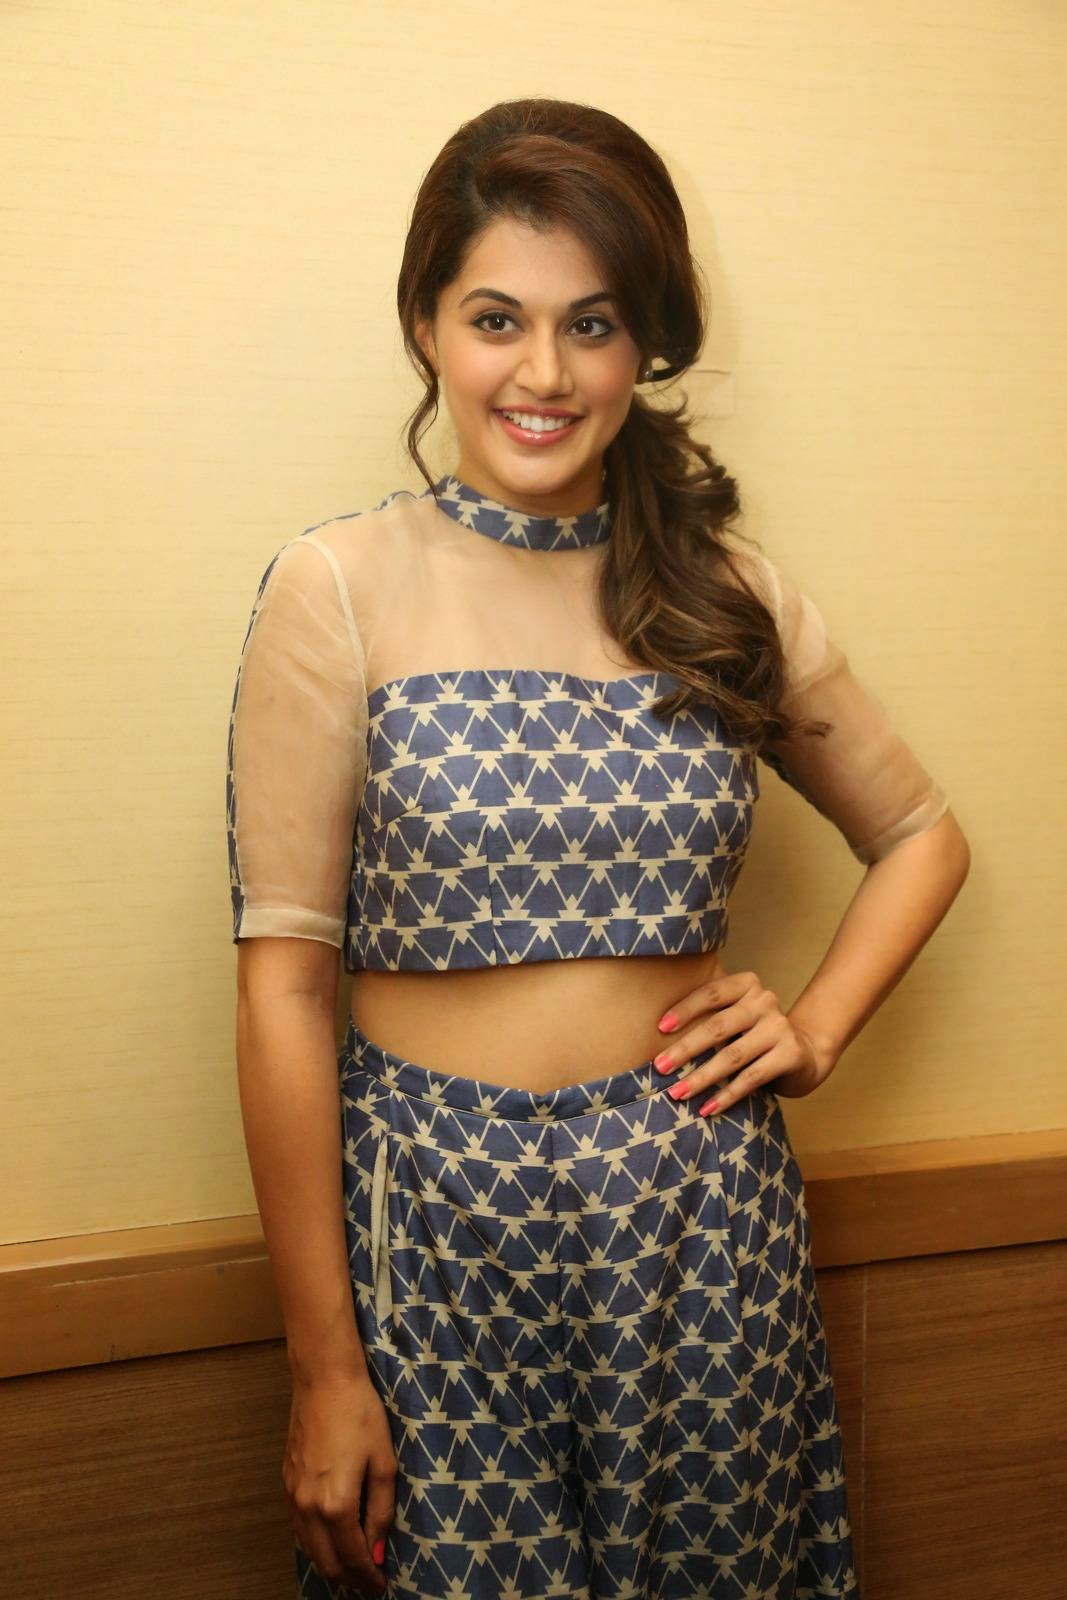 Taapsee Pannu (aka) Actress Tapsee photos stills images Tapasee pannu new photos